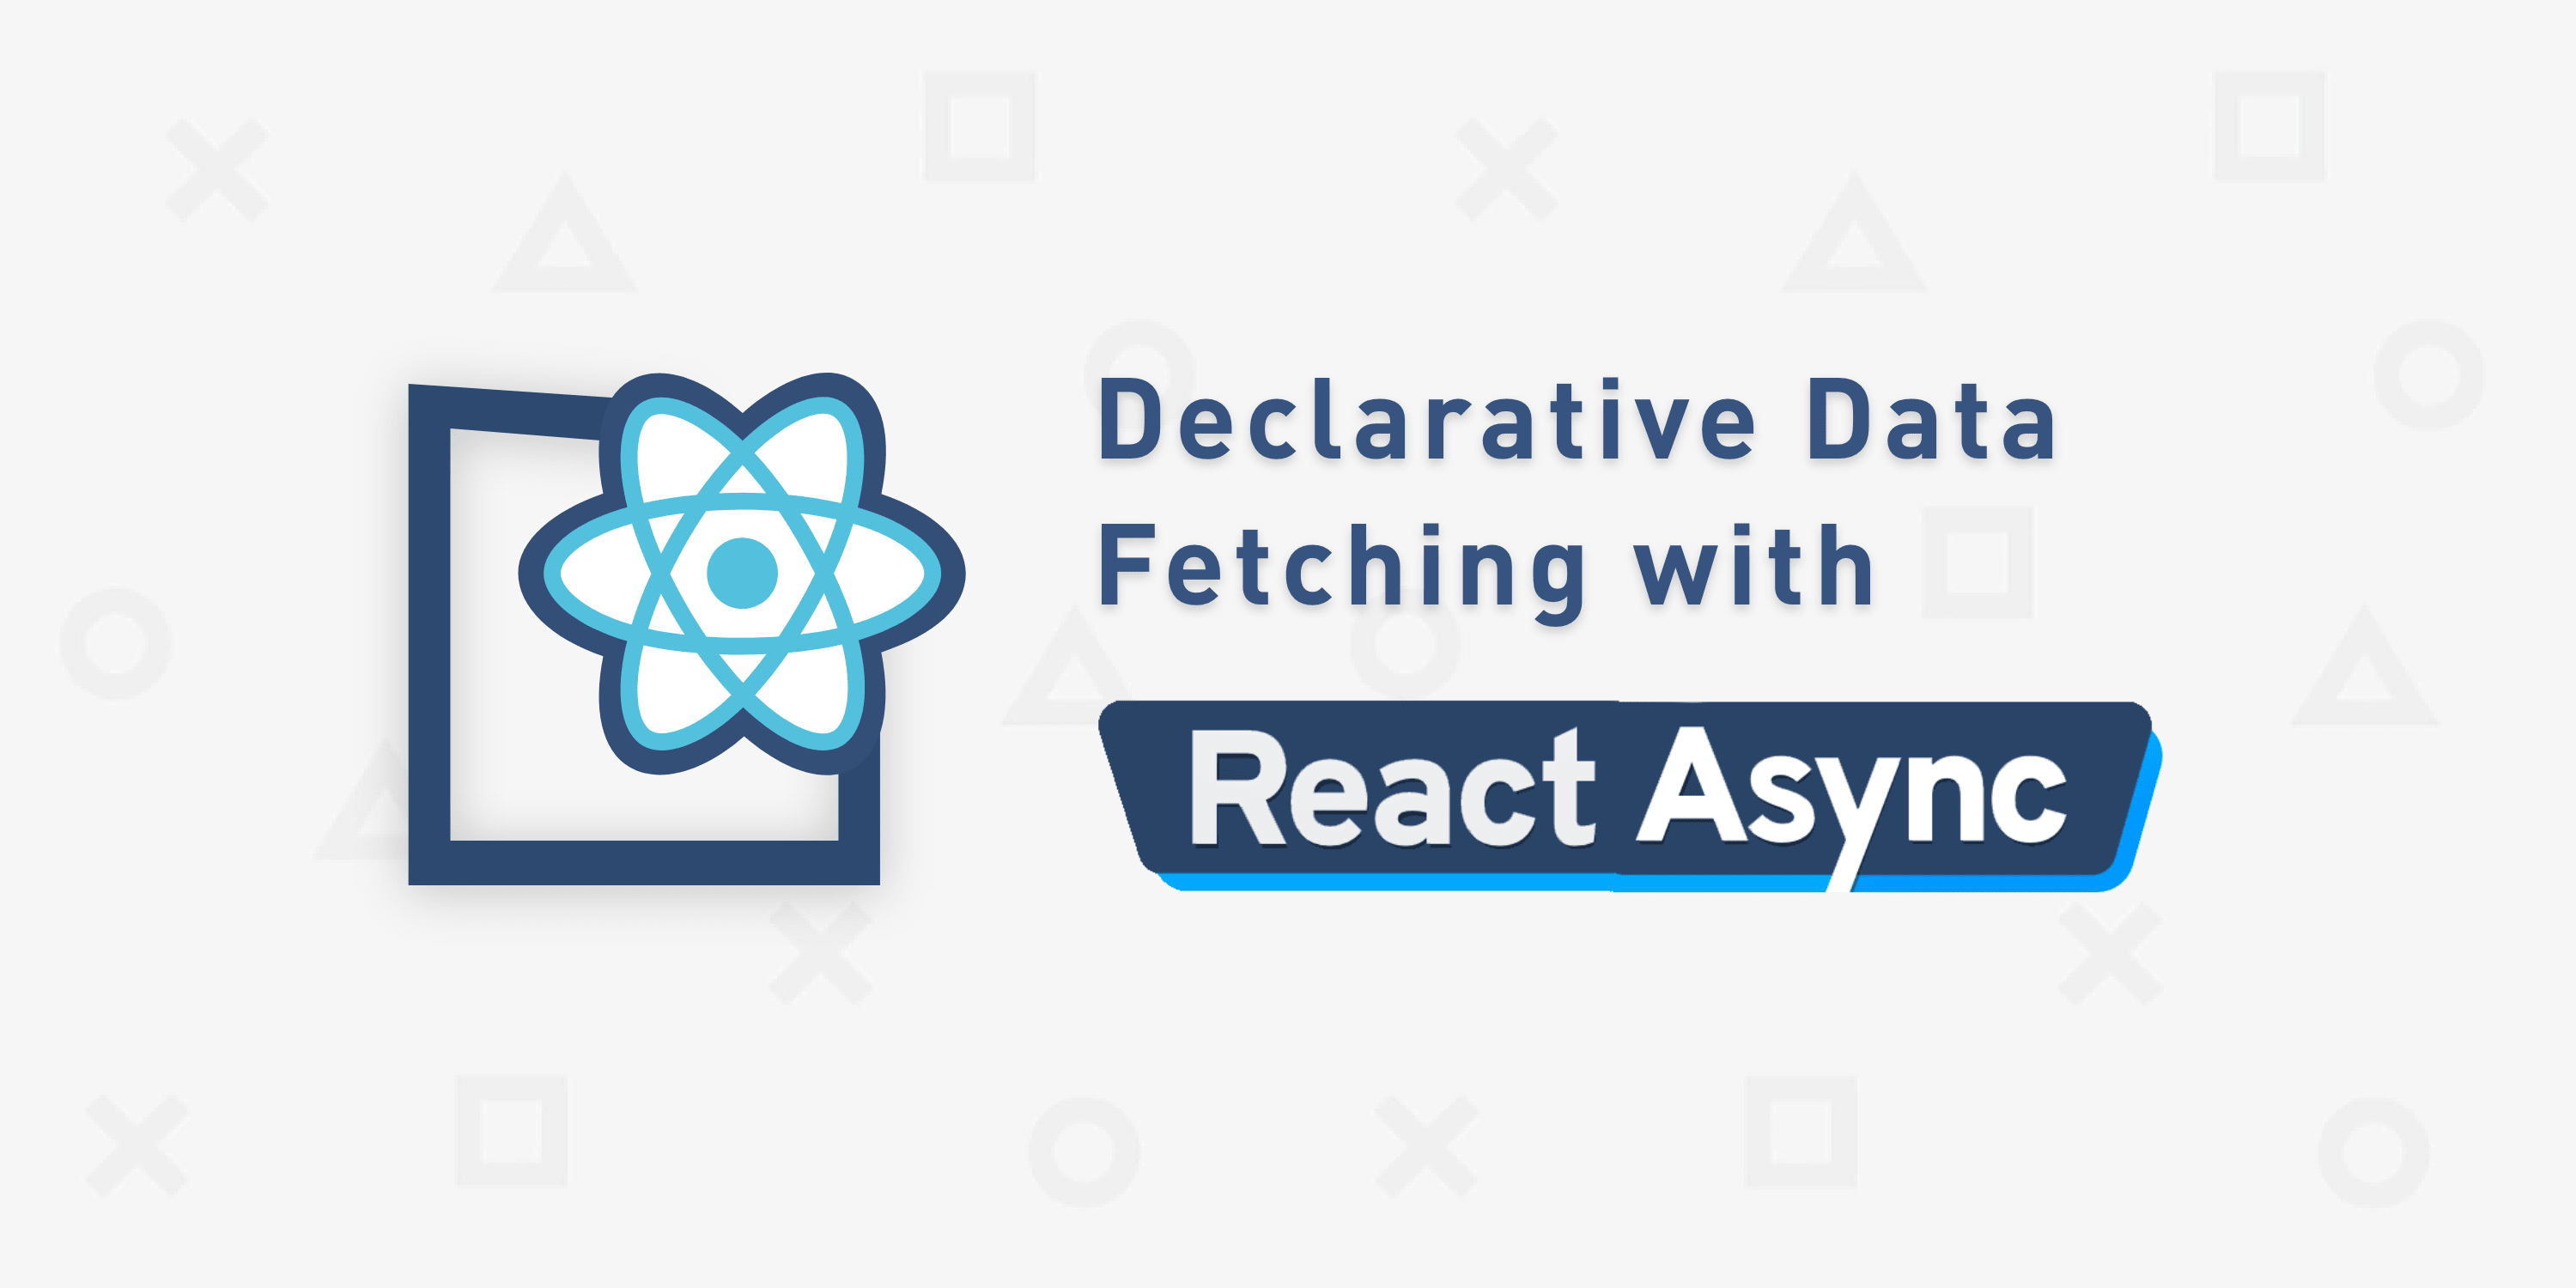 React Async for Declarative Data Fetching ― Scotch io